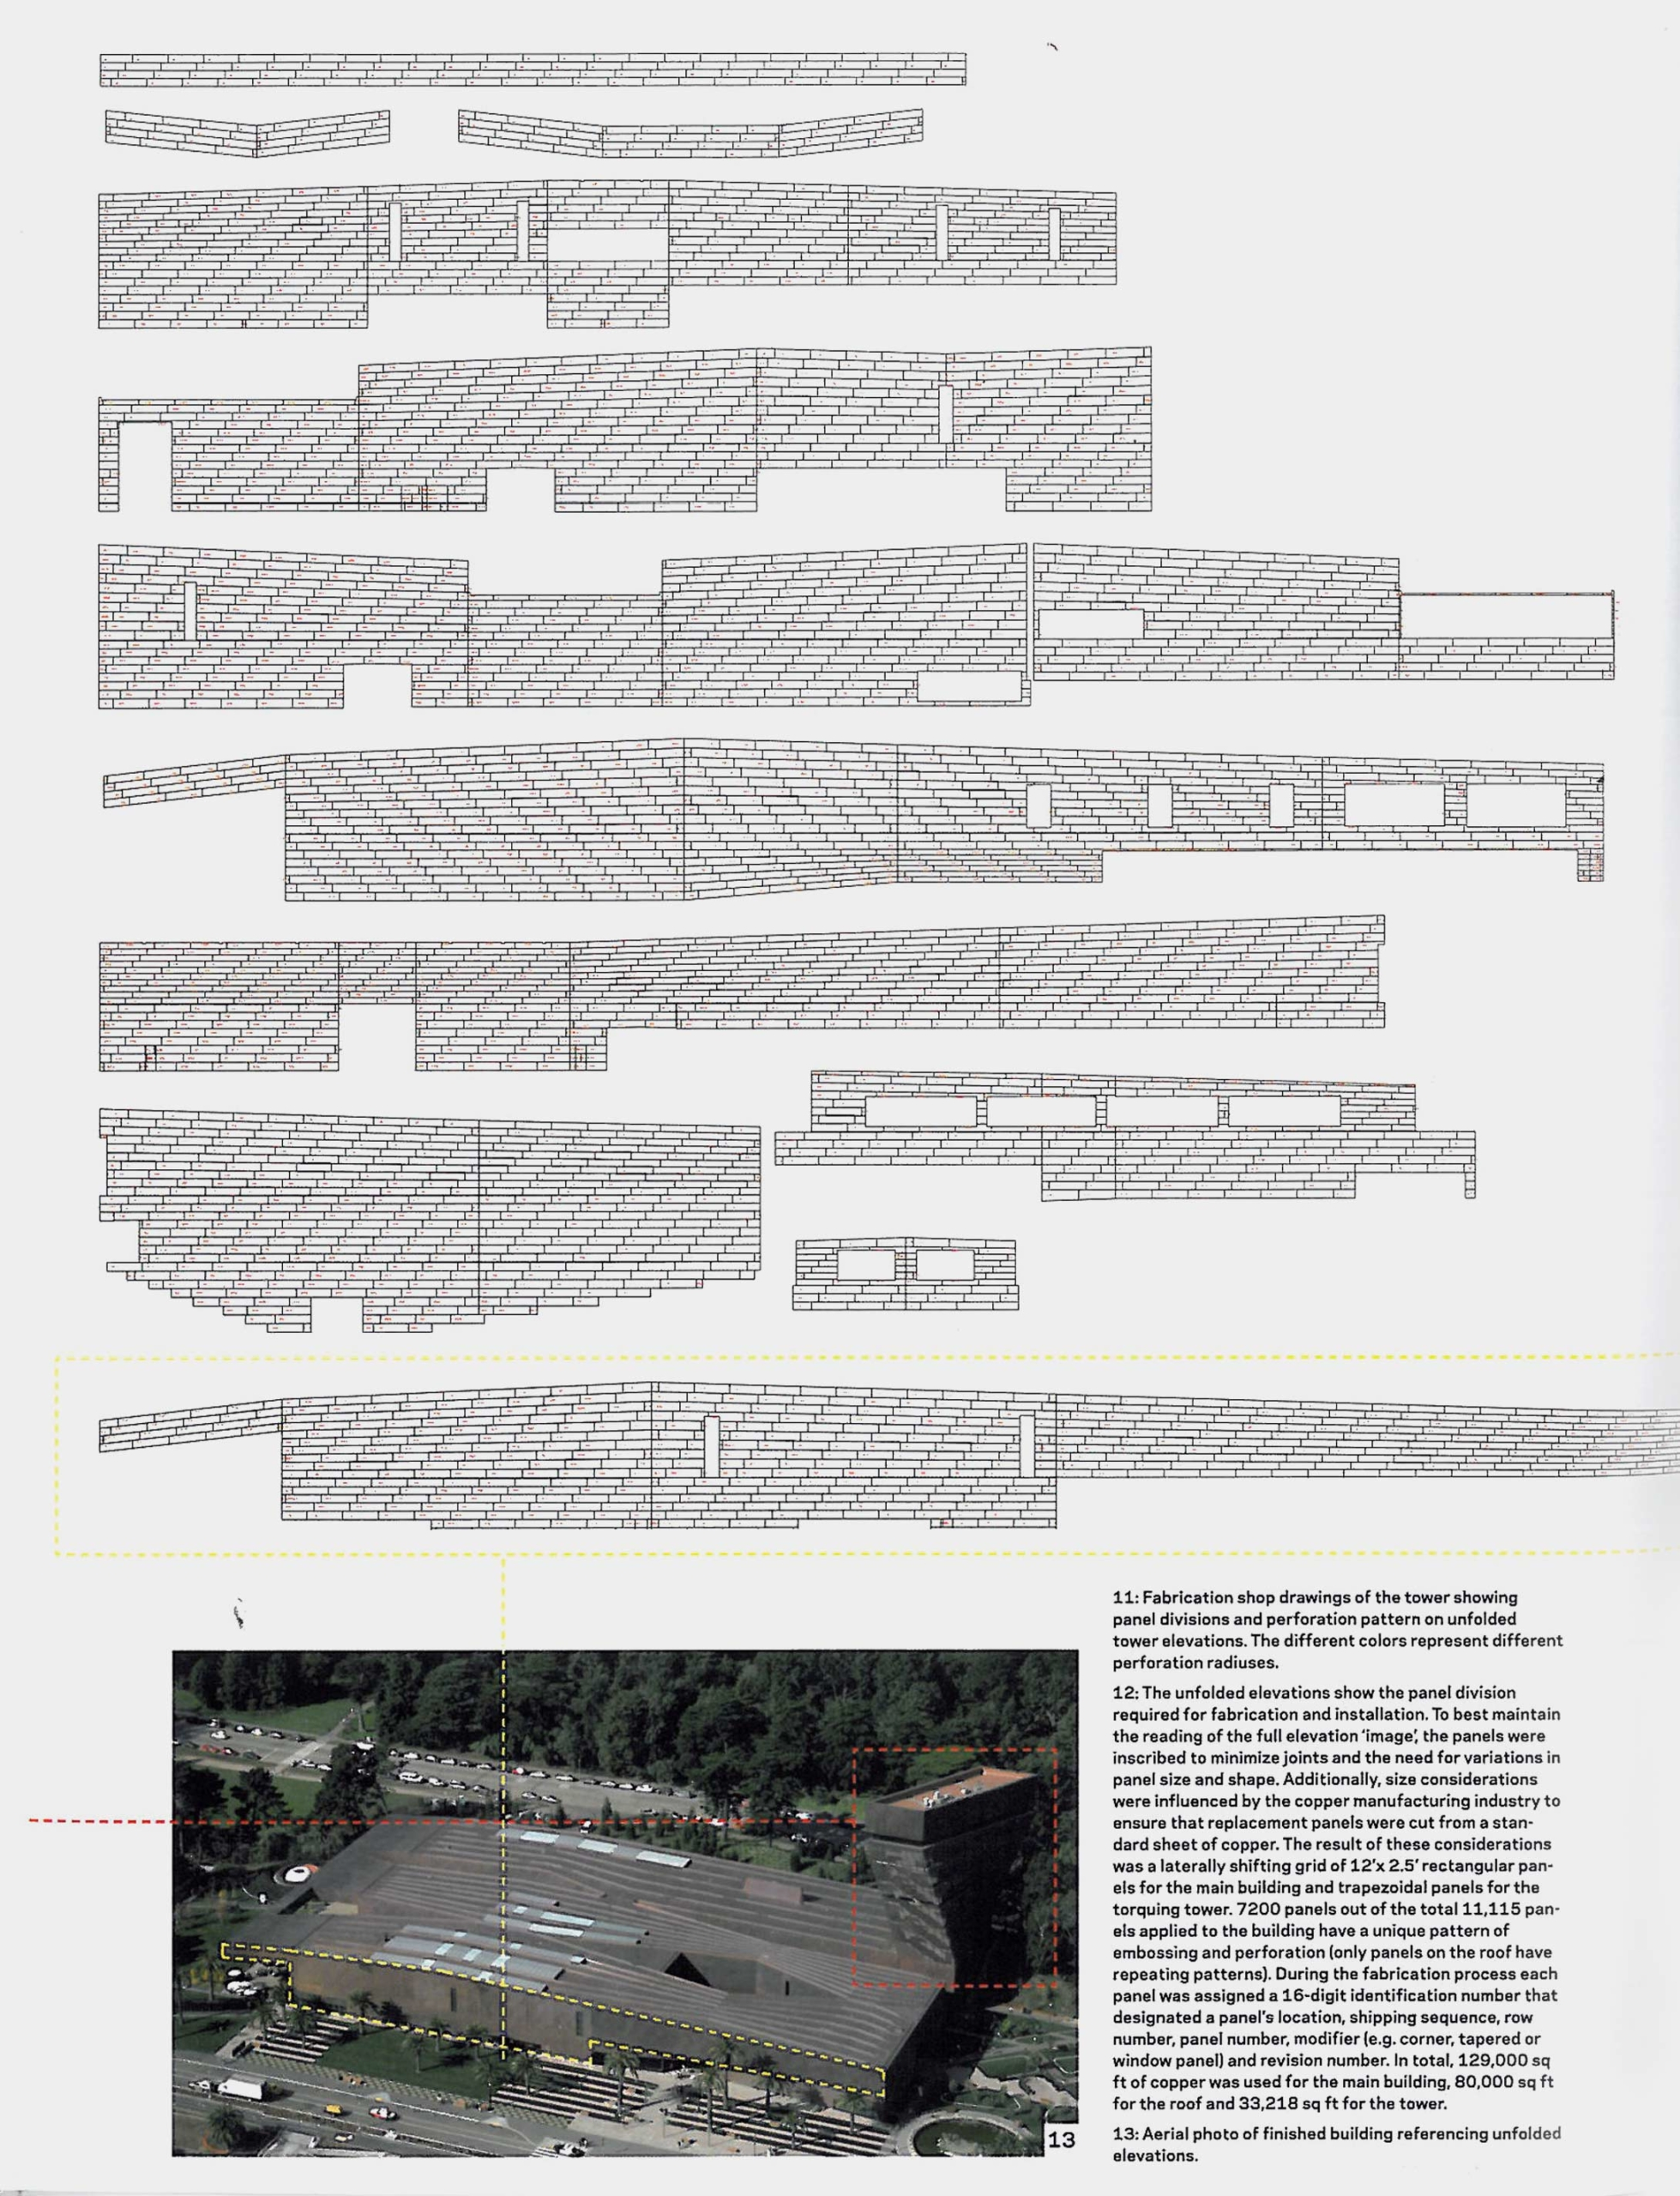 Elevation diagram showing all of the panels for the de Young Museum's dimpled facade.